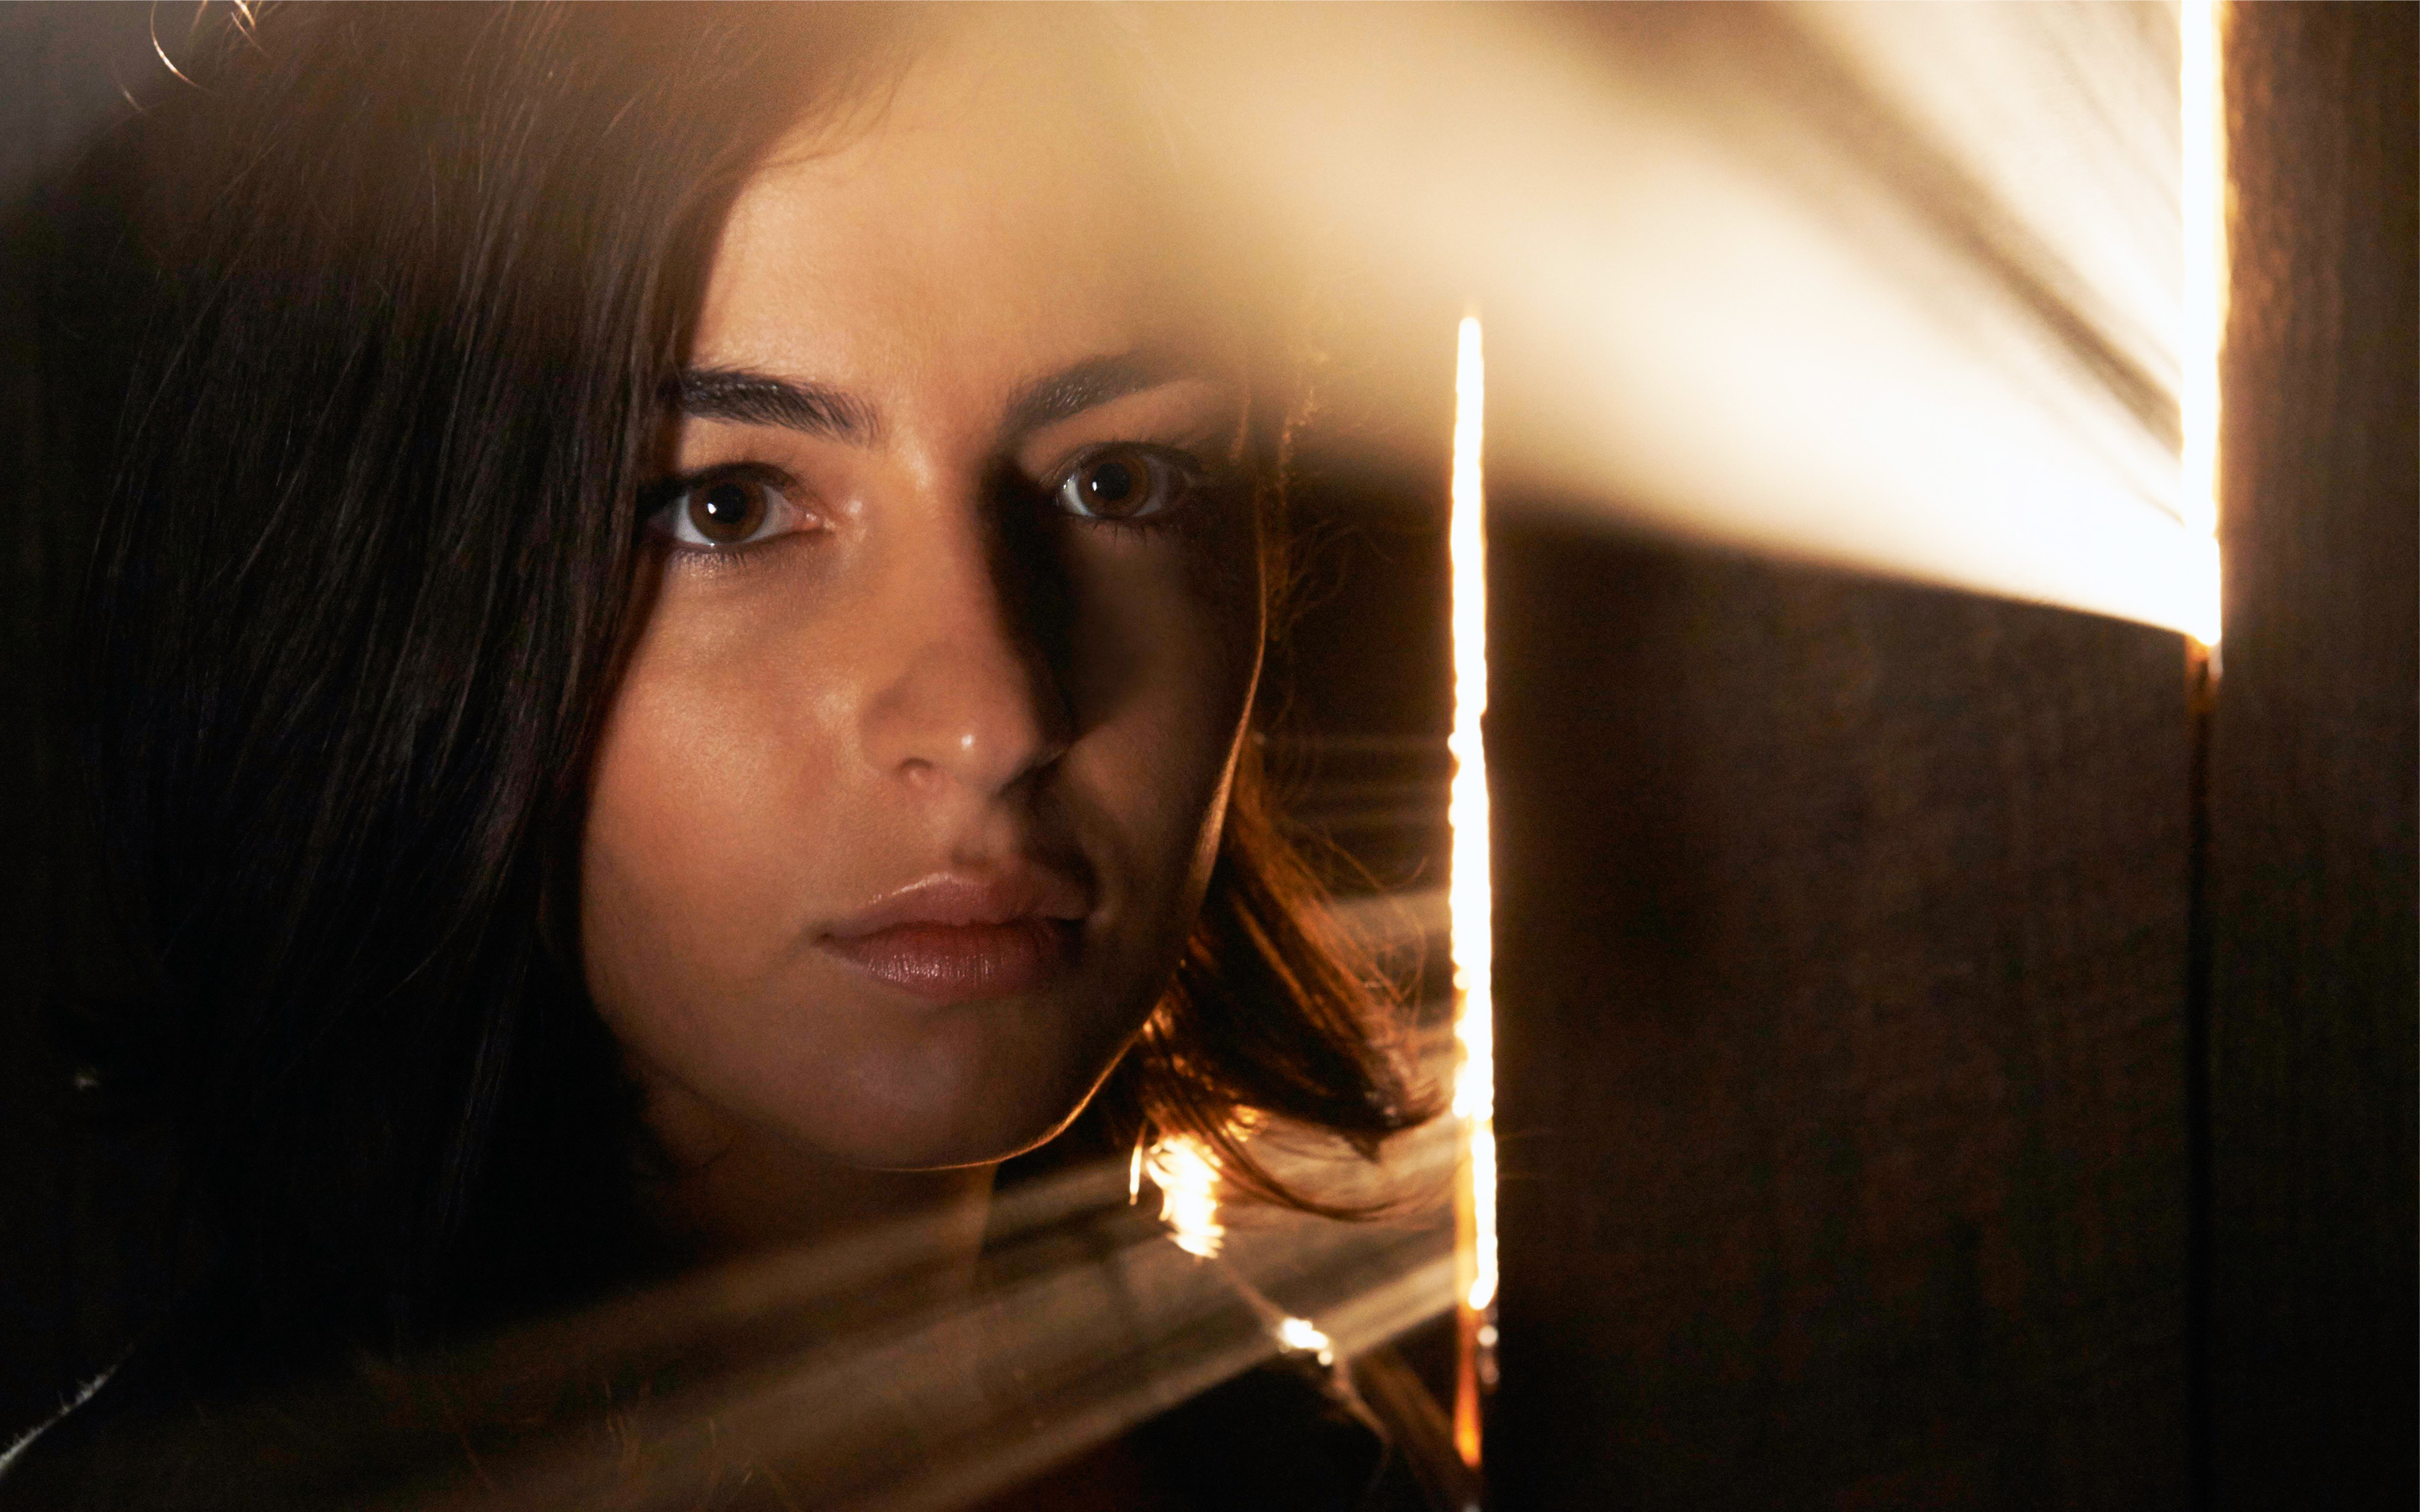 Alanna Masterson in Walking Dead Season 5 1763.19 Kb